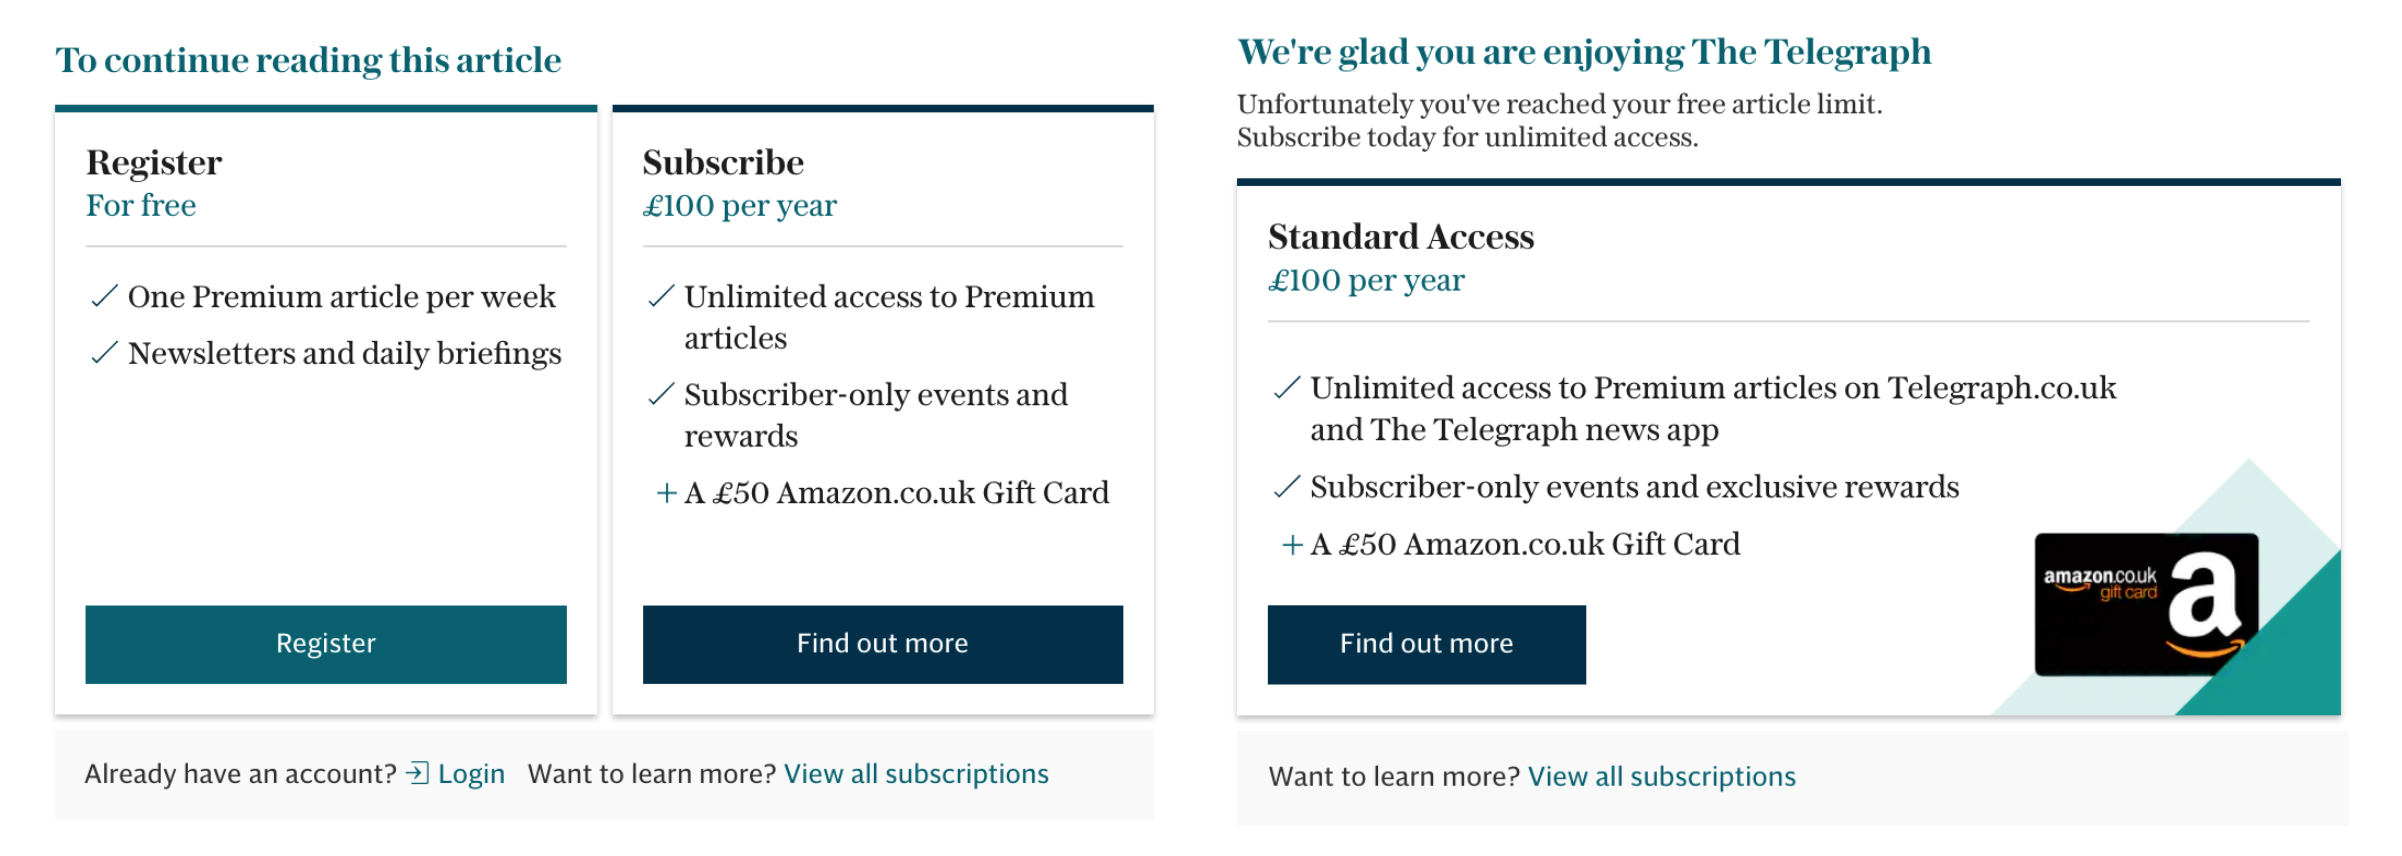 Telegraph Smart Paywall - optimising for life time value